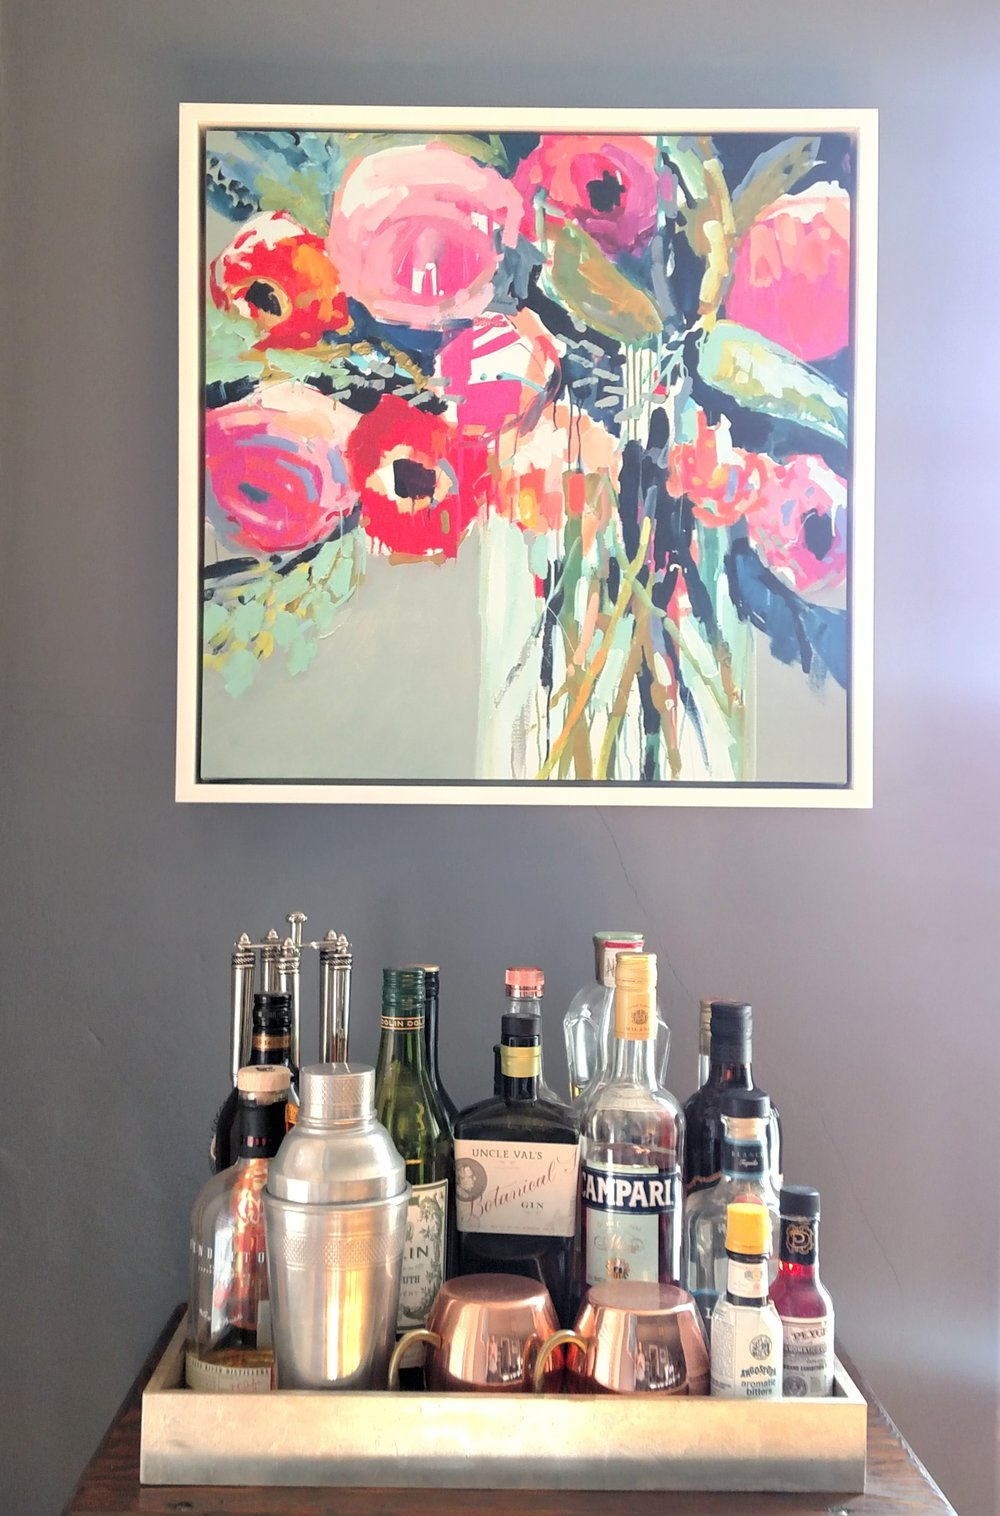 """I love this colorful  Erin Gregory  giclee print from One Kings Lane, but hope to """"upgrade"""" soon and put a piece of original art here."""